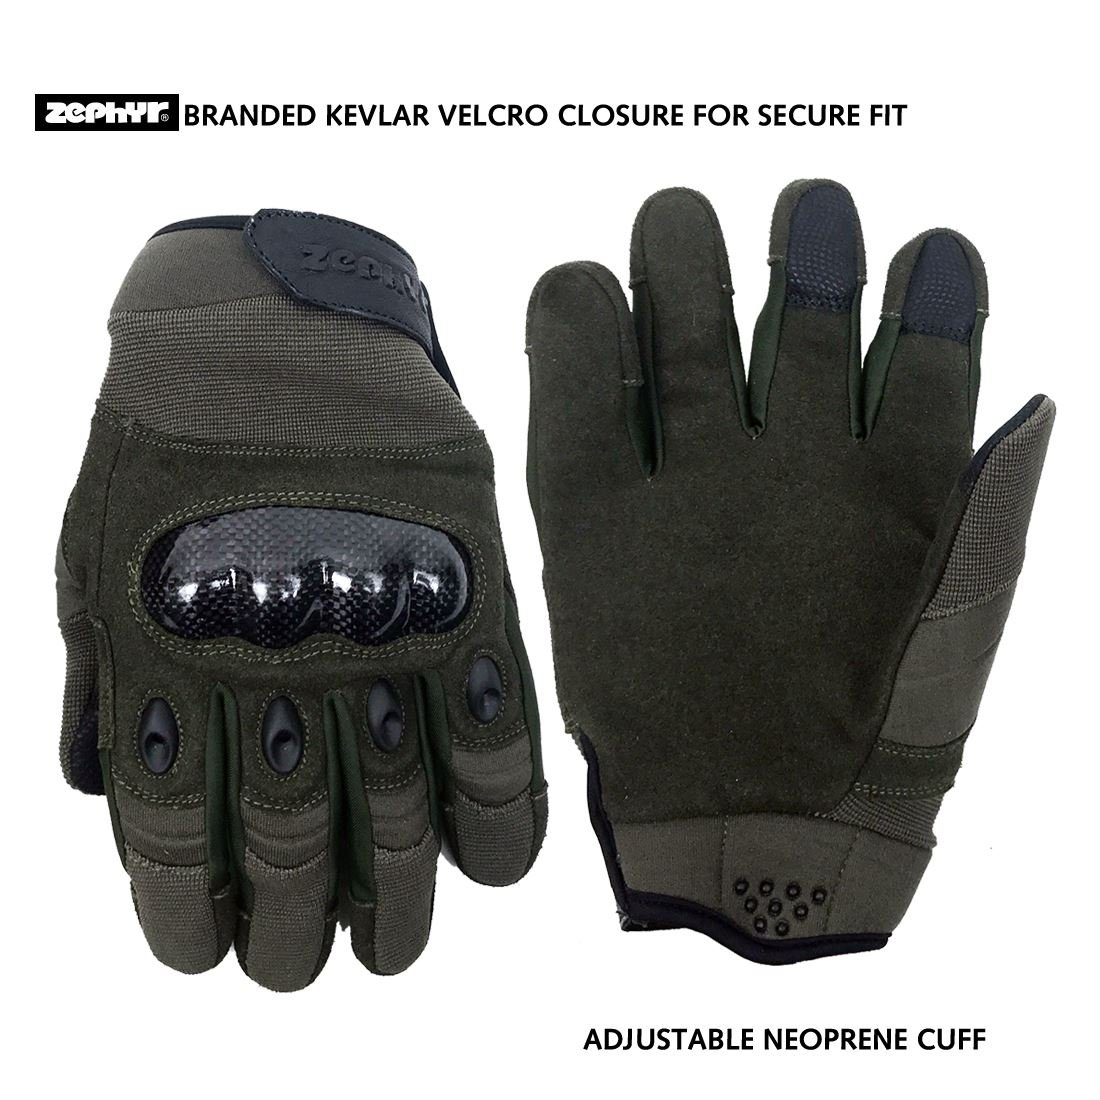 Zephyr Tactical Full Finger Carbon Fiber Knuckle Gloves w/Touchscreen Technology - Dark Olive - Small by Zephyr Tactical